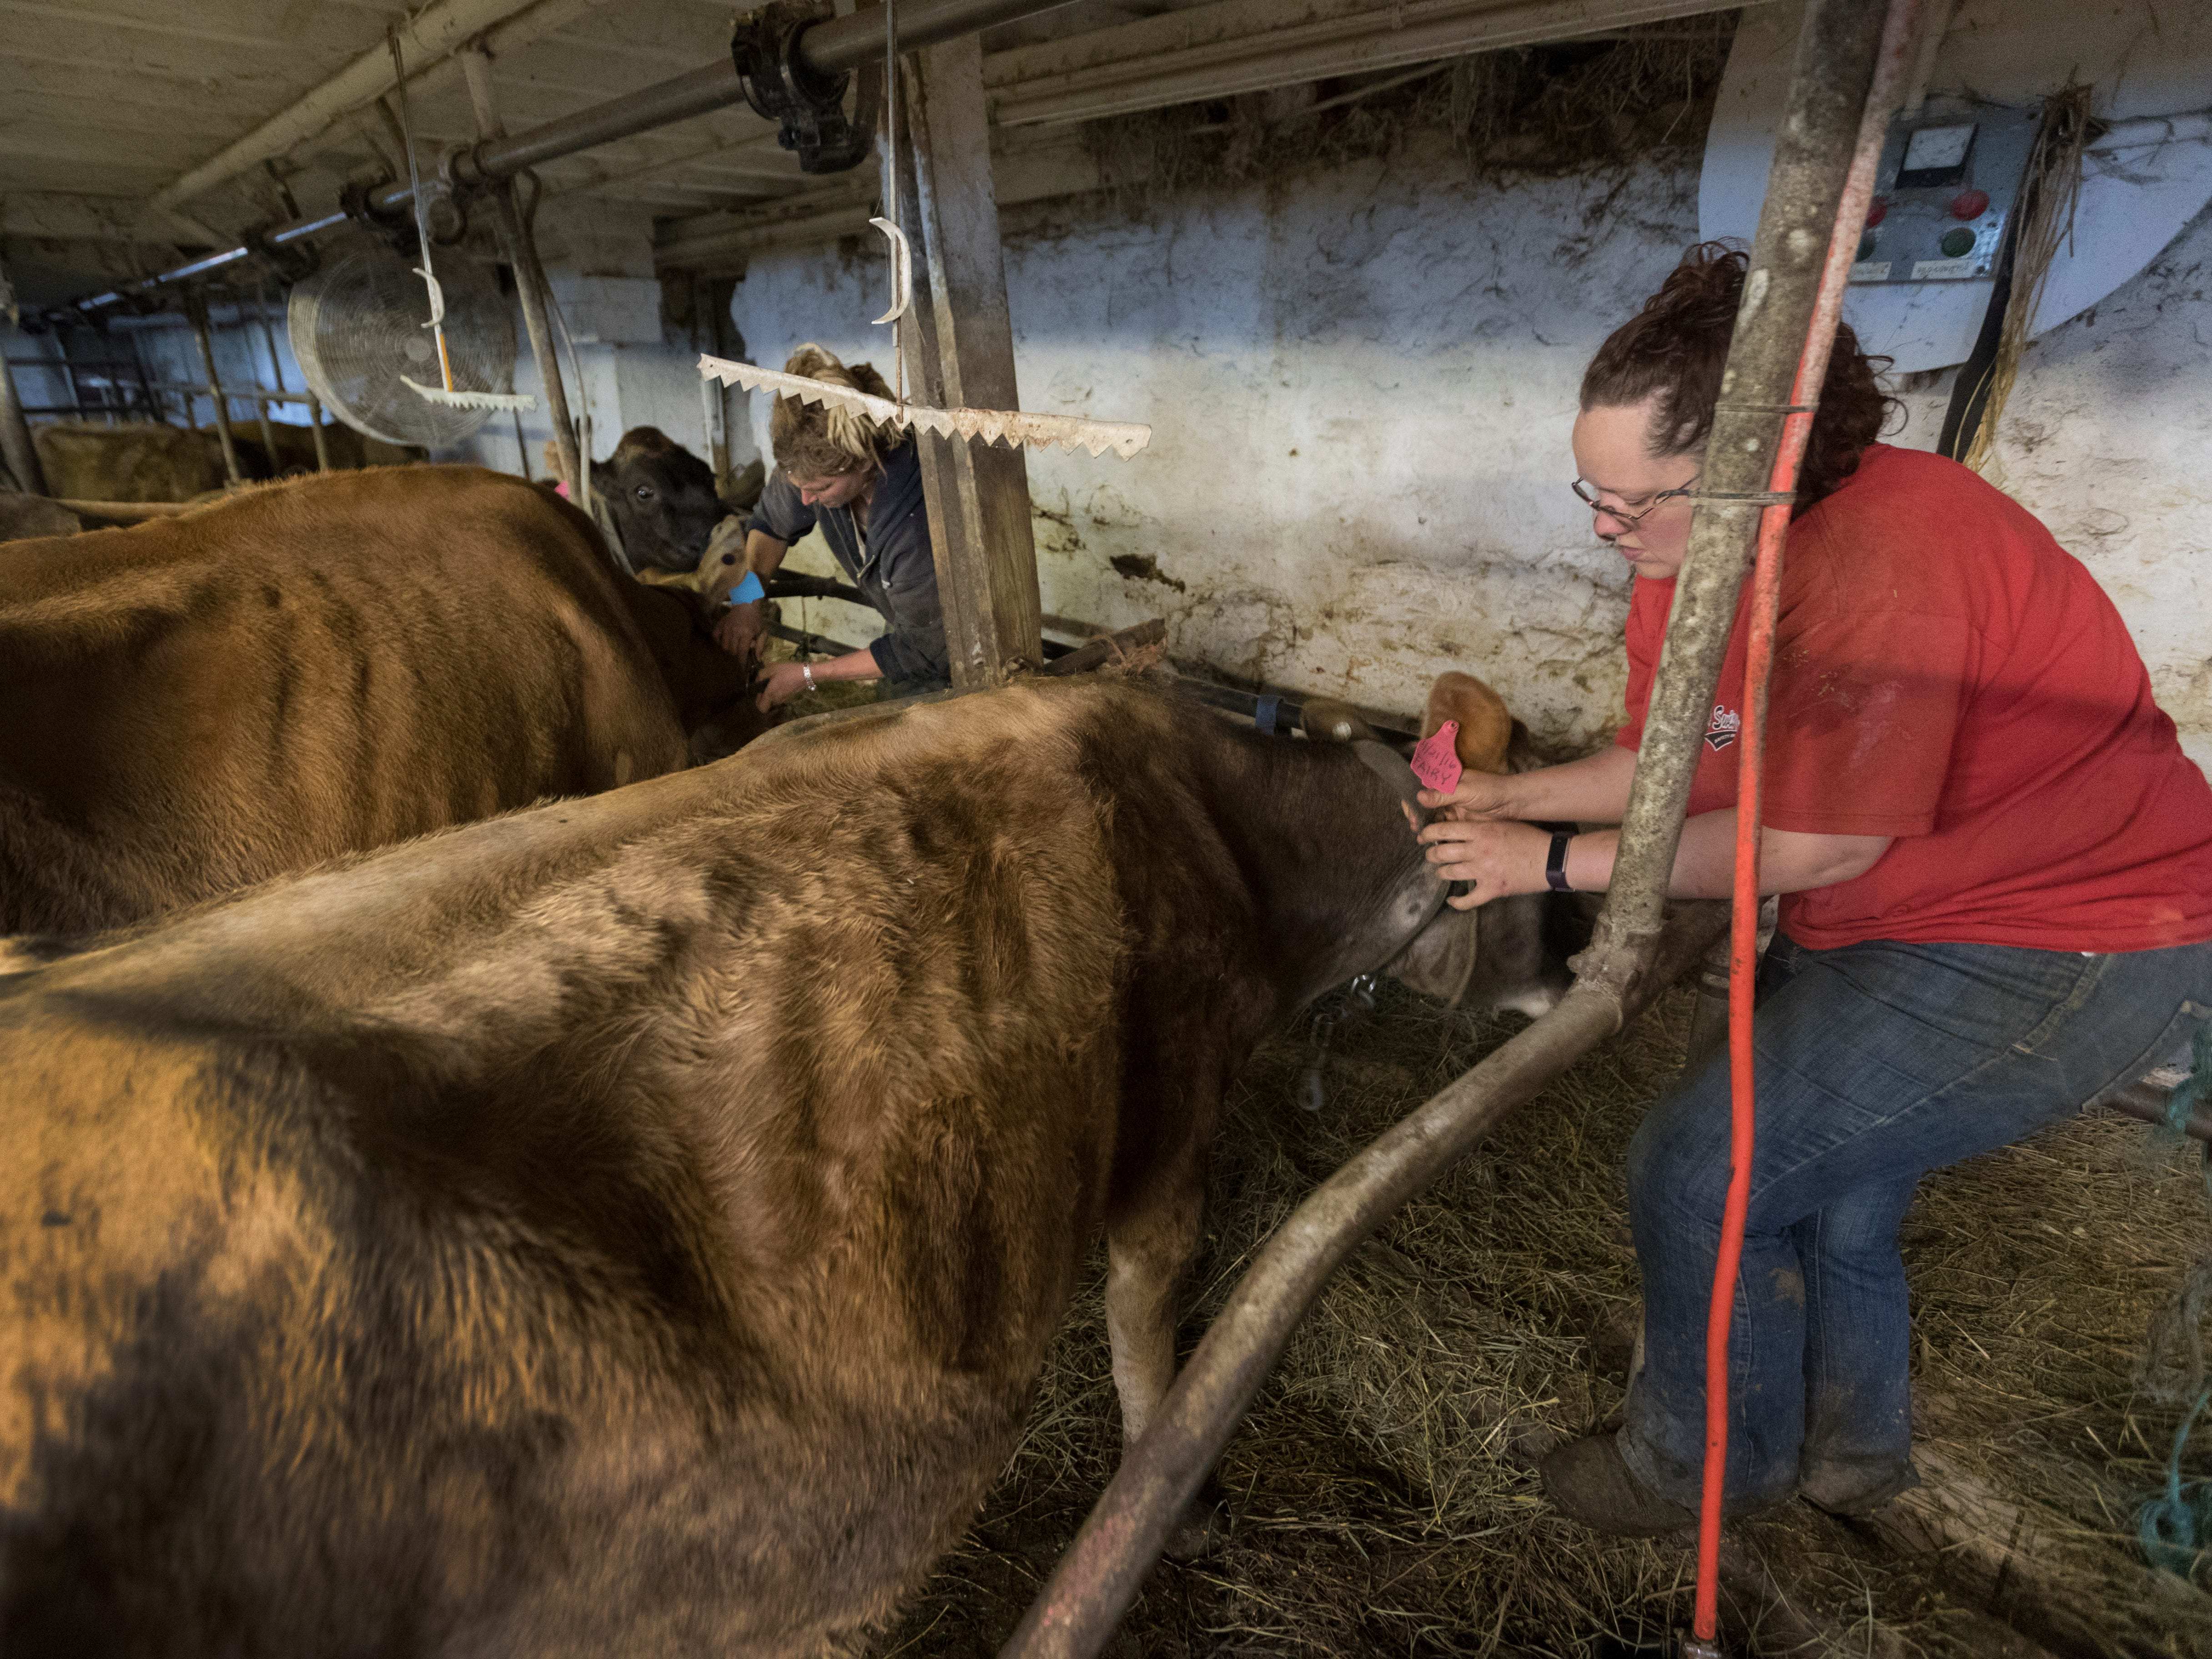 Brandi, right, and Emily Harris remove the collars from their cows before the cows are loaded onto trailers.